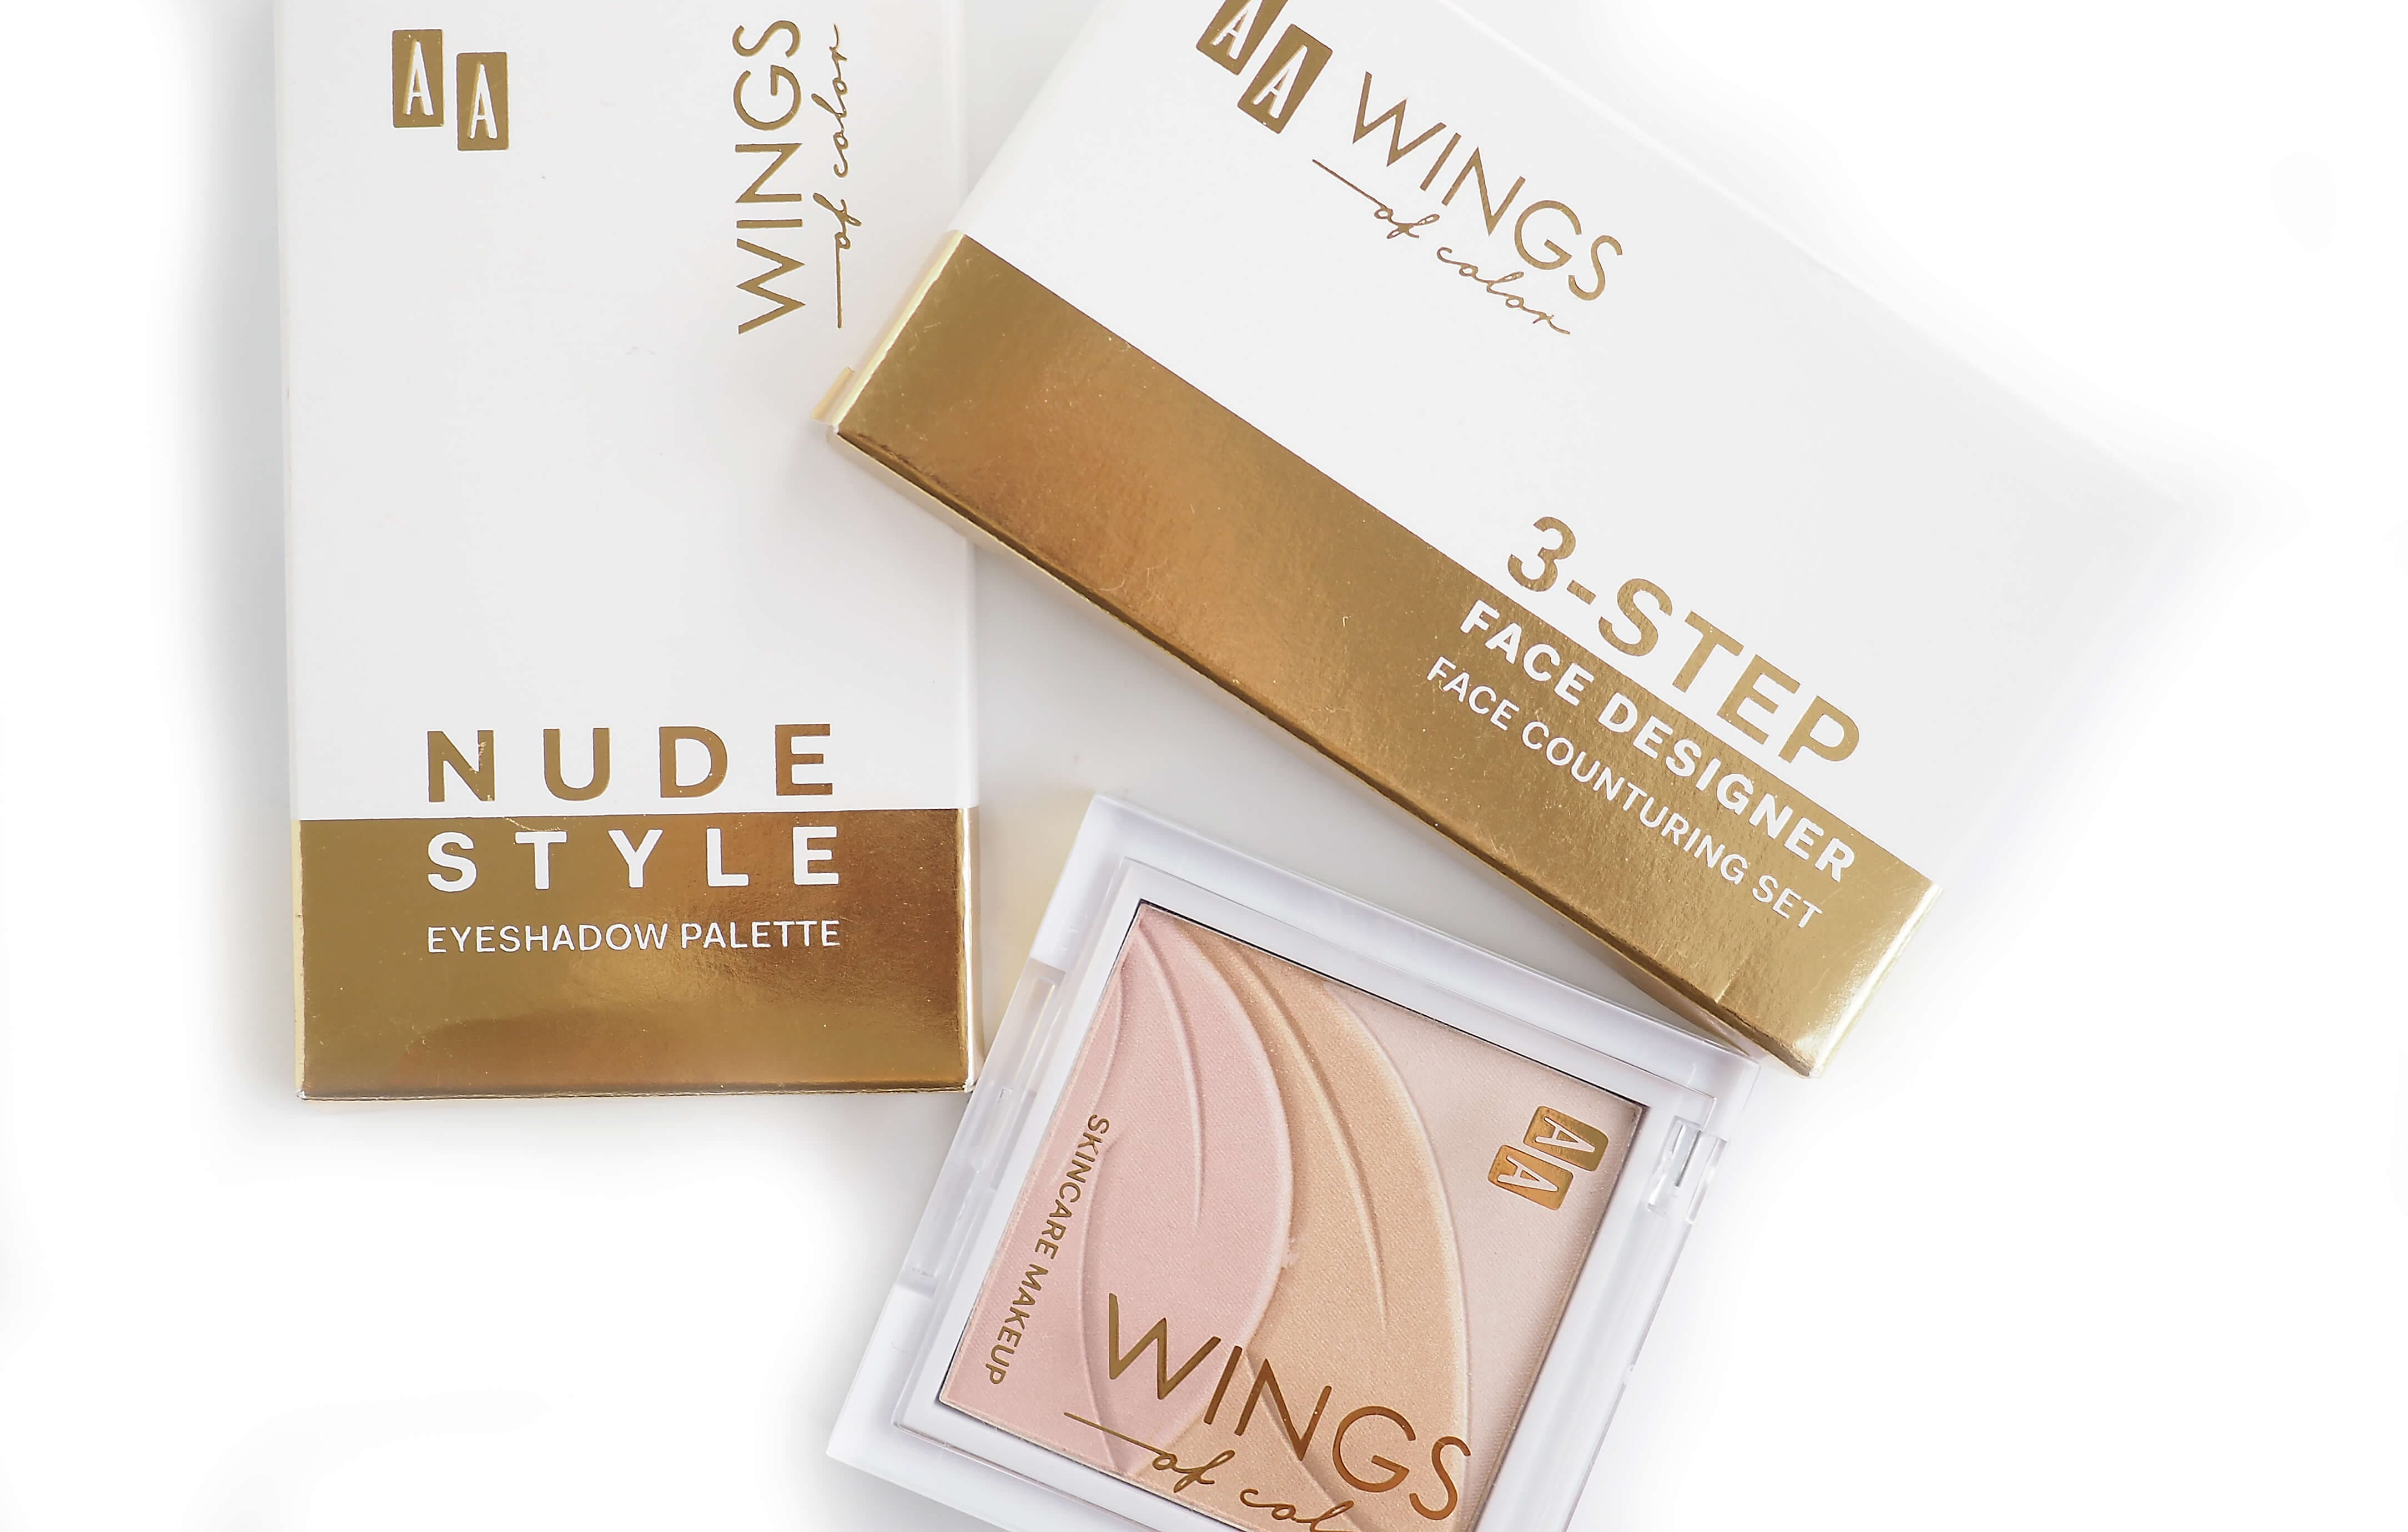 AA WINGS OF COLOR MAKE UP